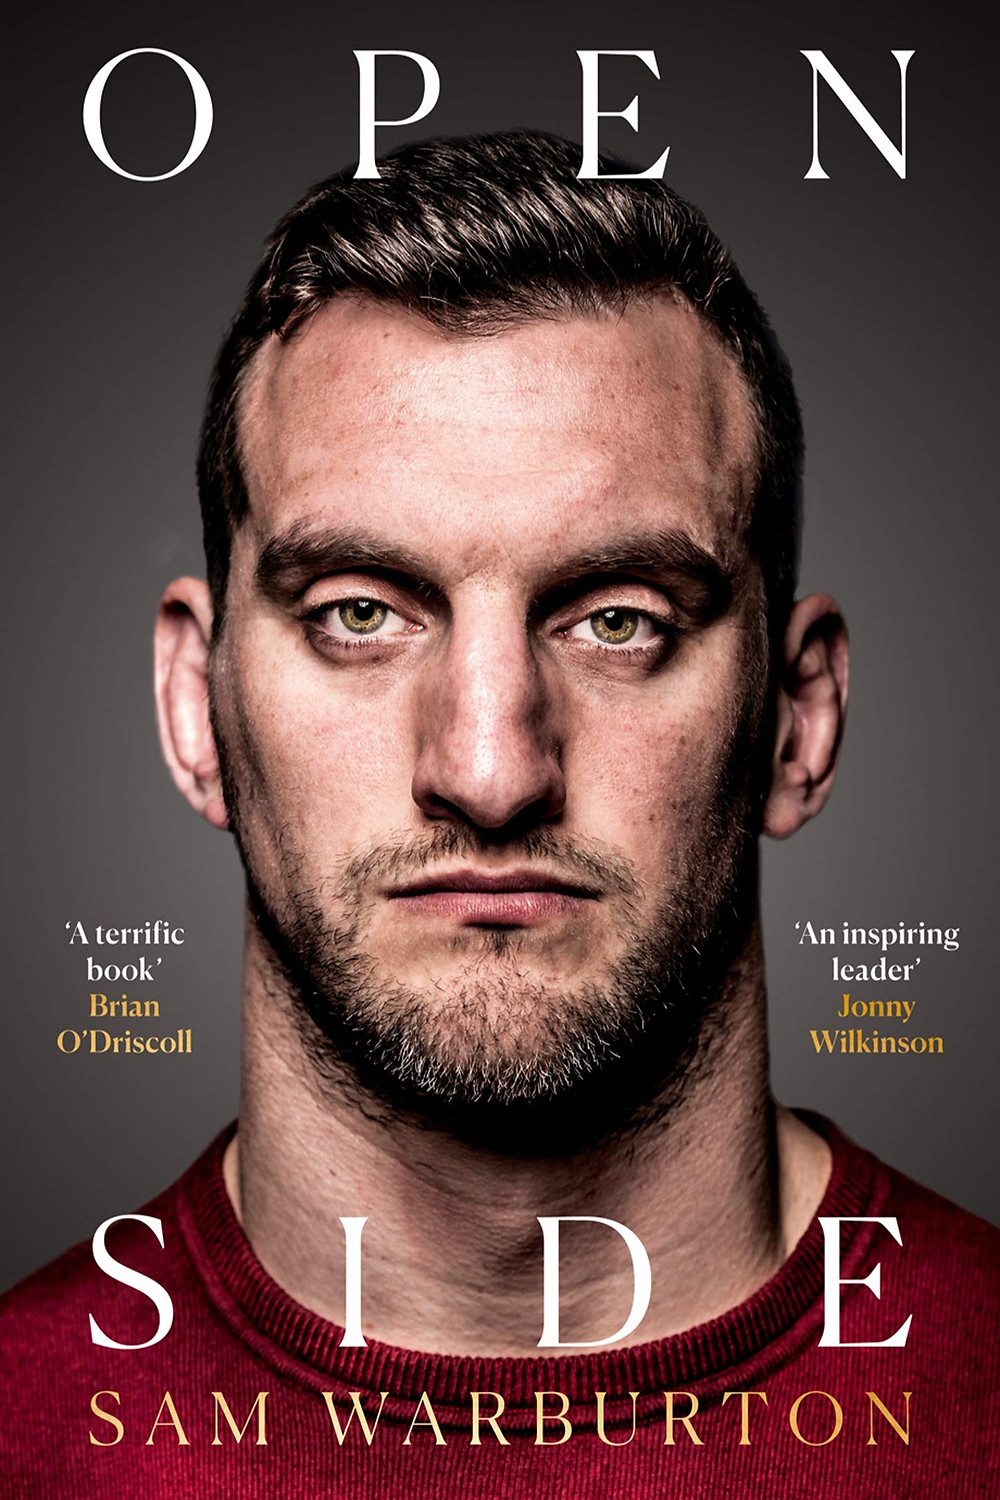 Open side by Sam Warburton book cover